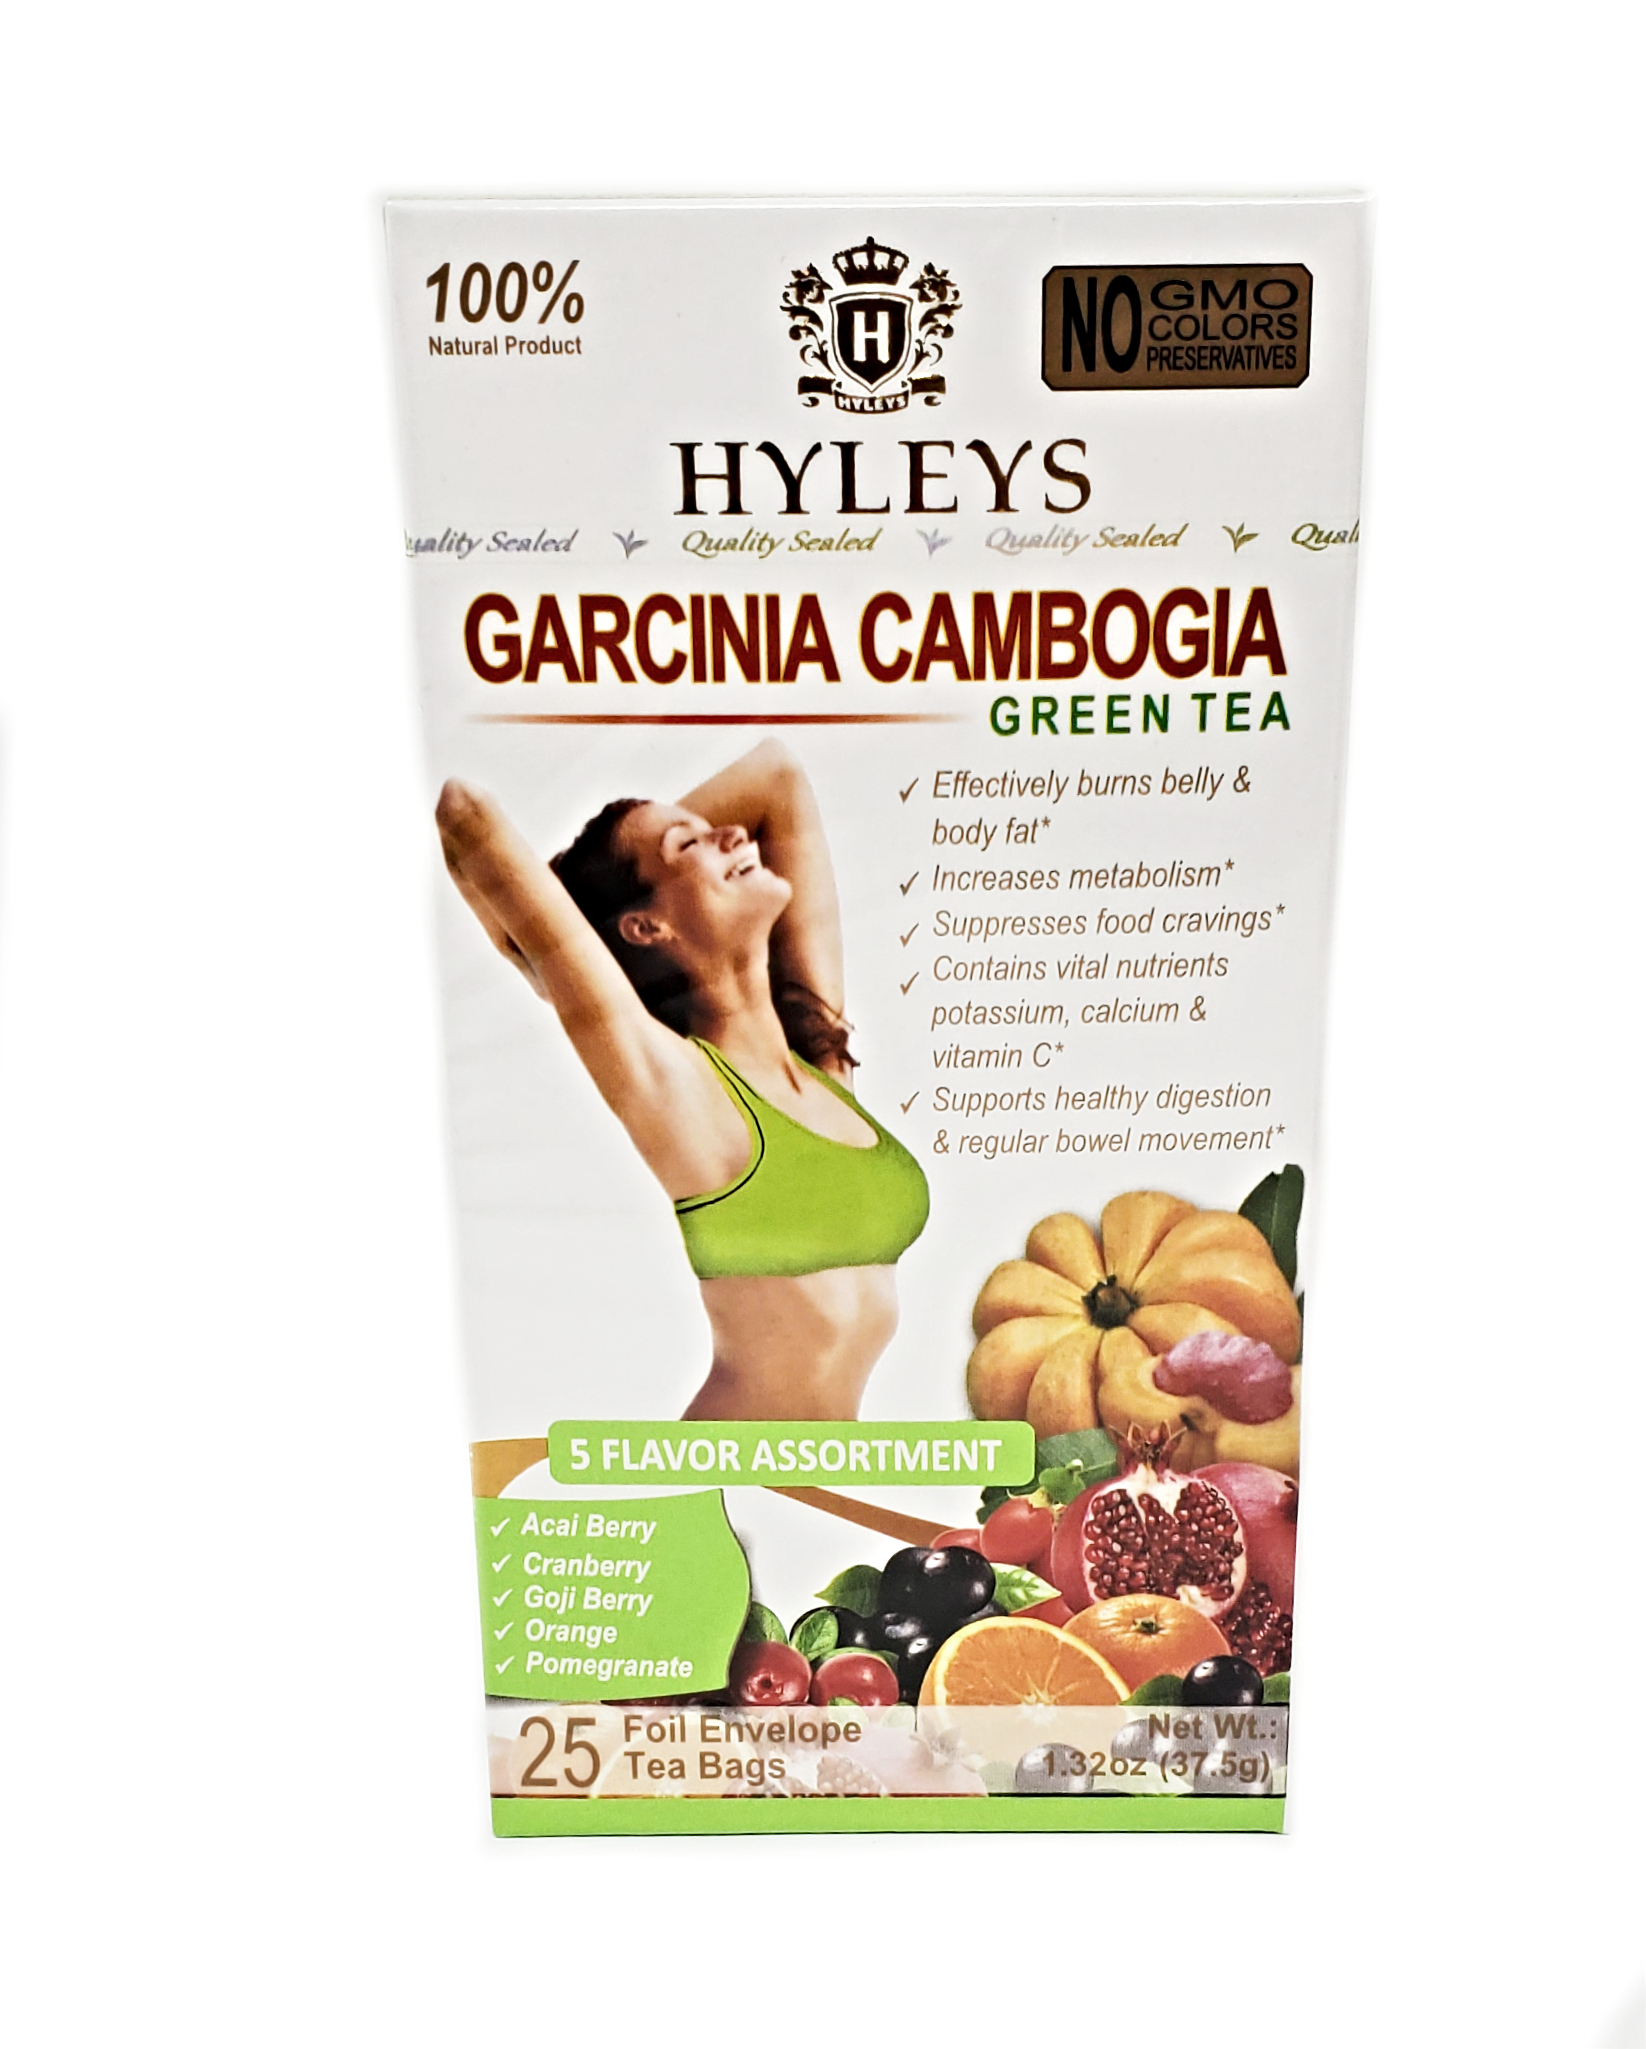 Hyleys Slim Tea Garcinia Cambogia 5 Flavor Assortment Tea 25